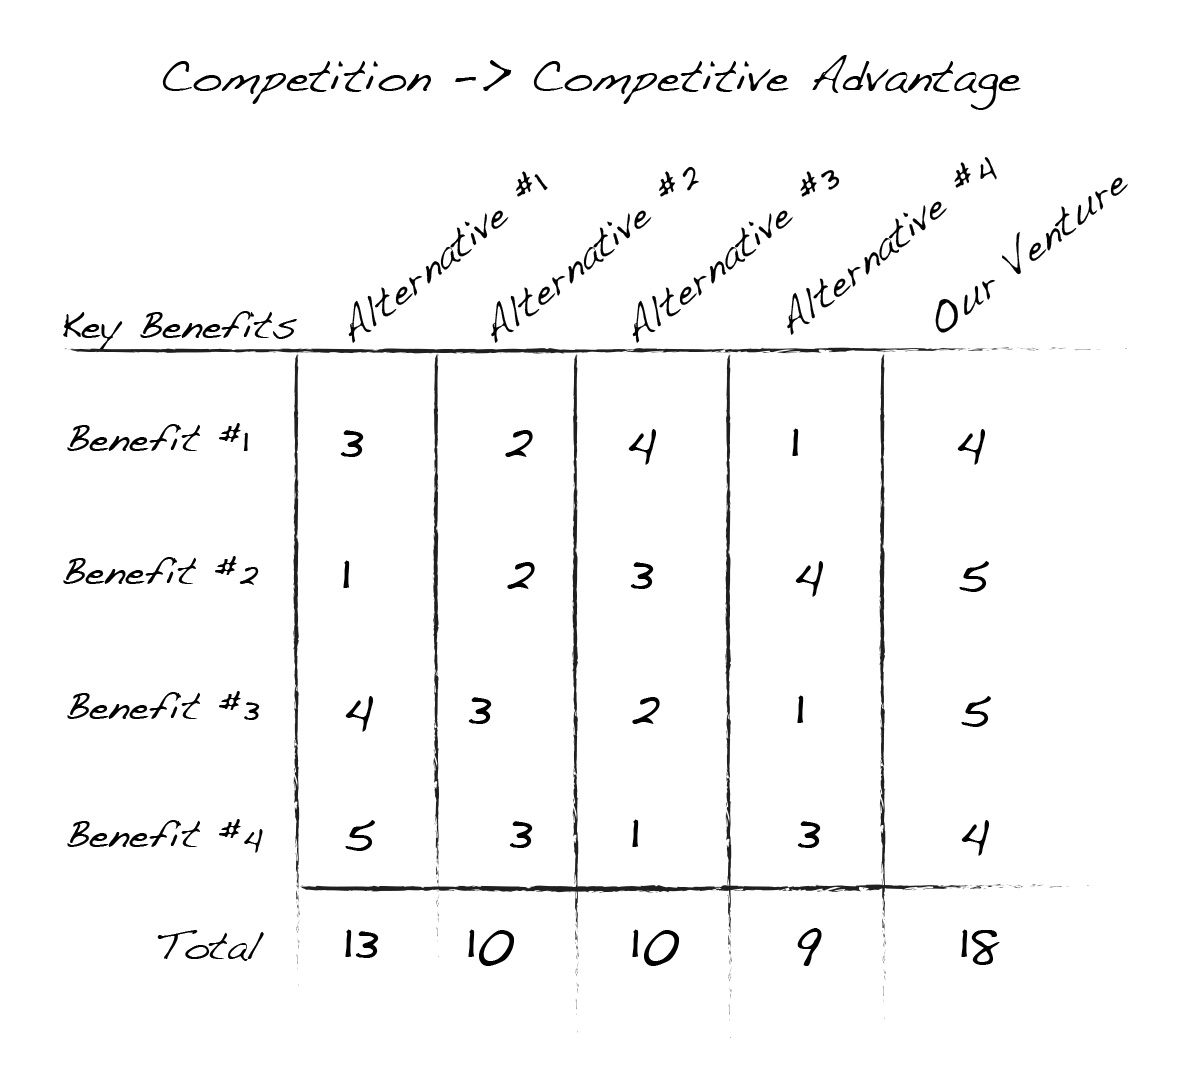 Copy of competition-competitiveadv.jpg